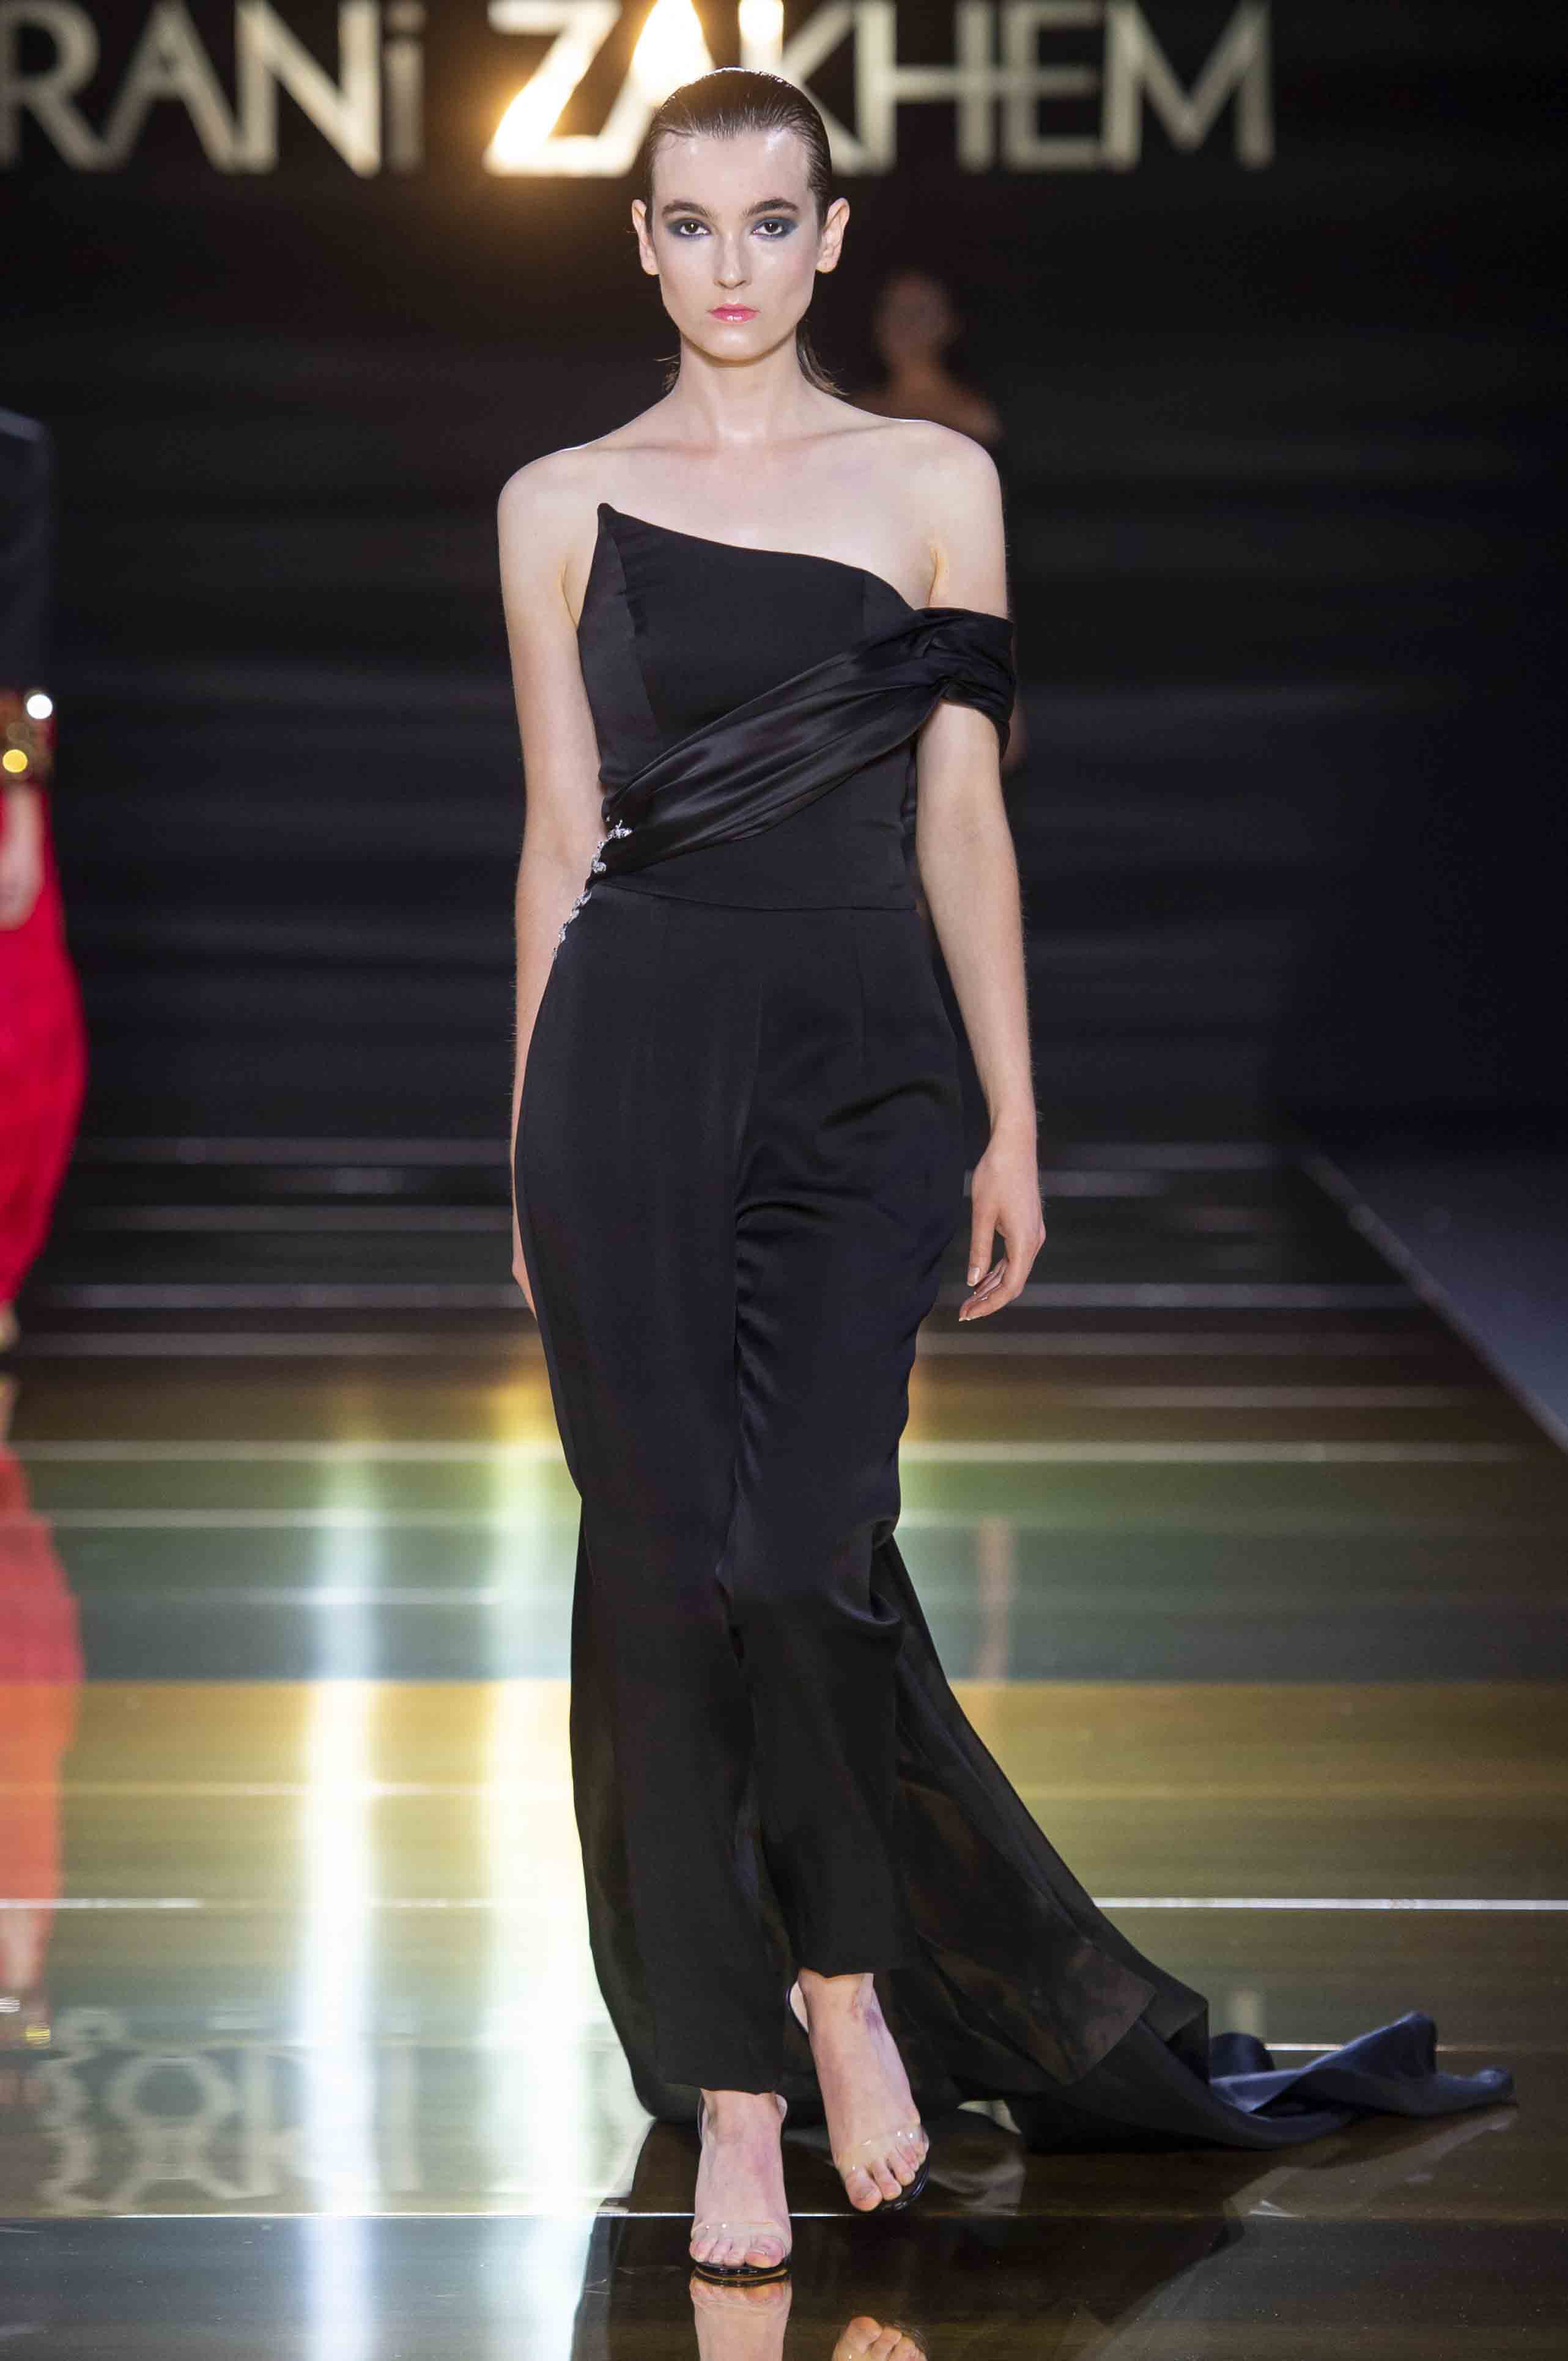 Rani zakhem couture collection automne hiver fall winter 2018 2019 pfw © imaxtree (26)